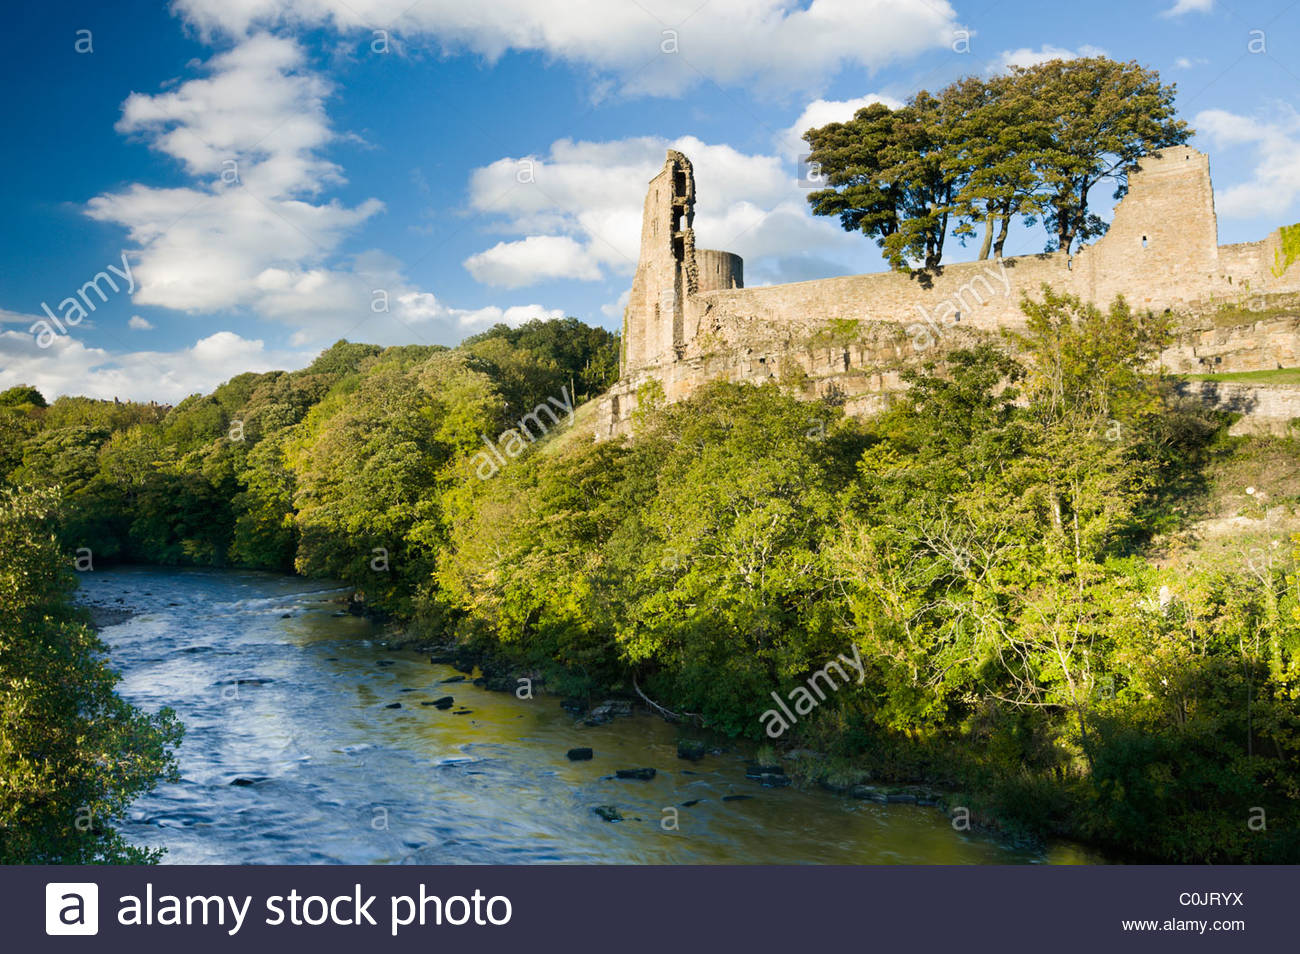 Barnard Castle and the River Tees, Teesdale, County Durham, England, UK. - Stock Image